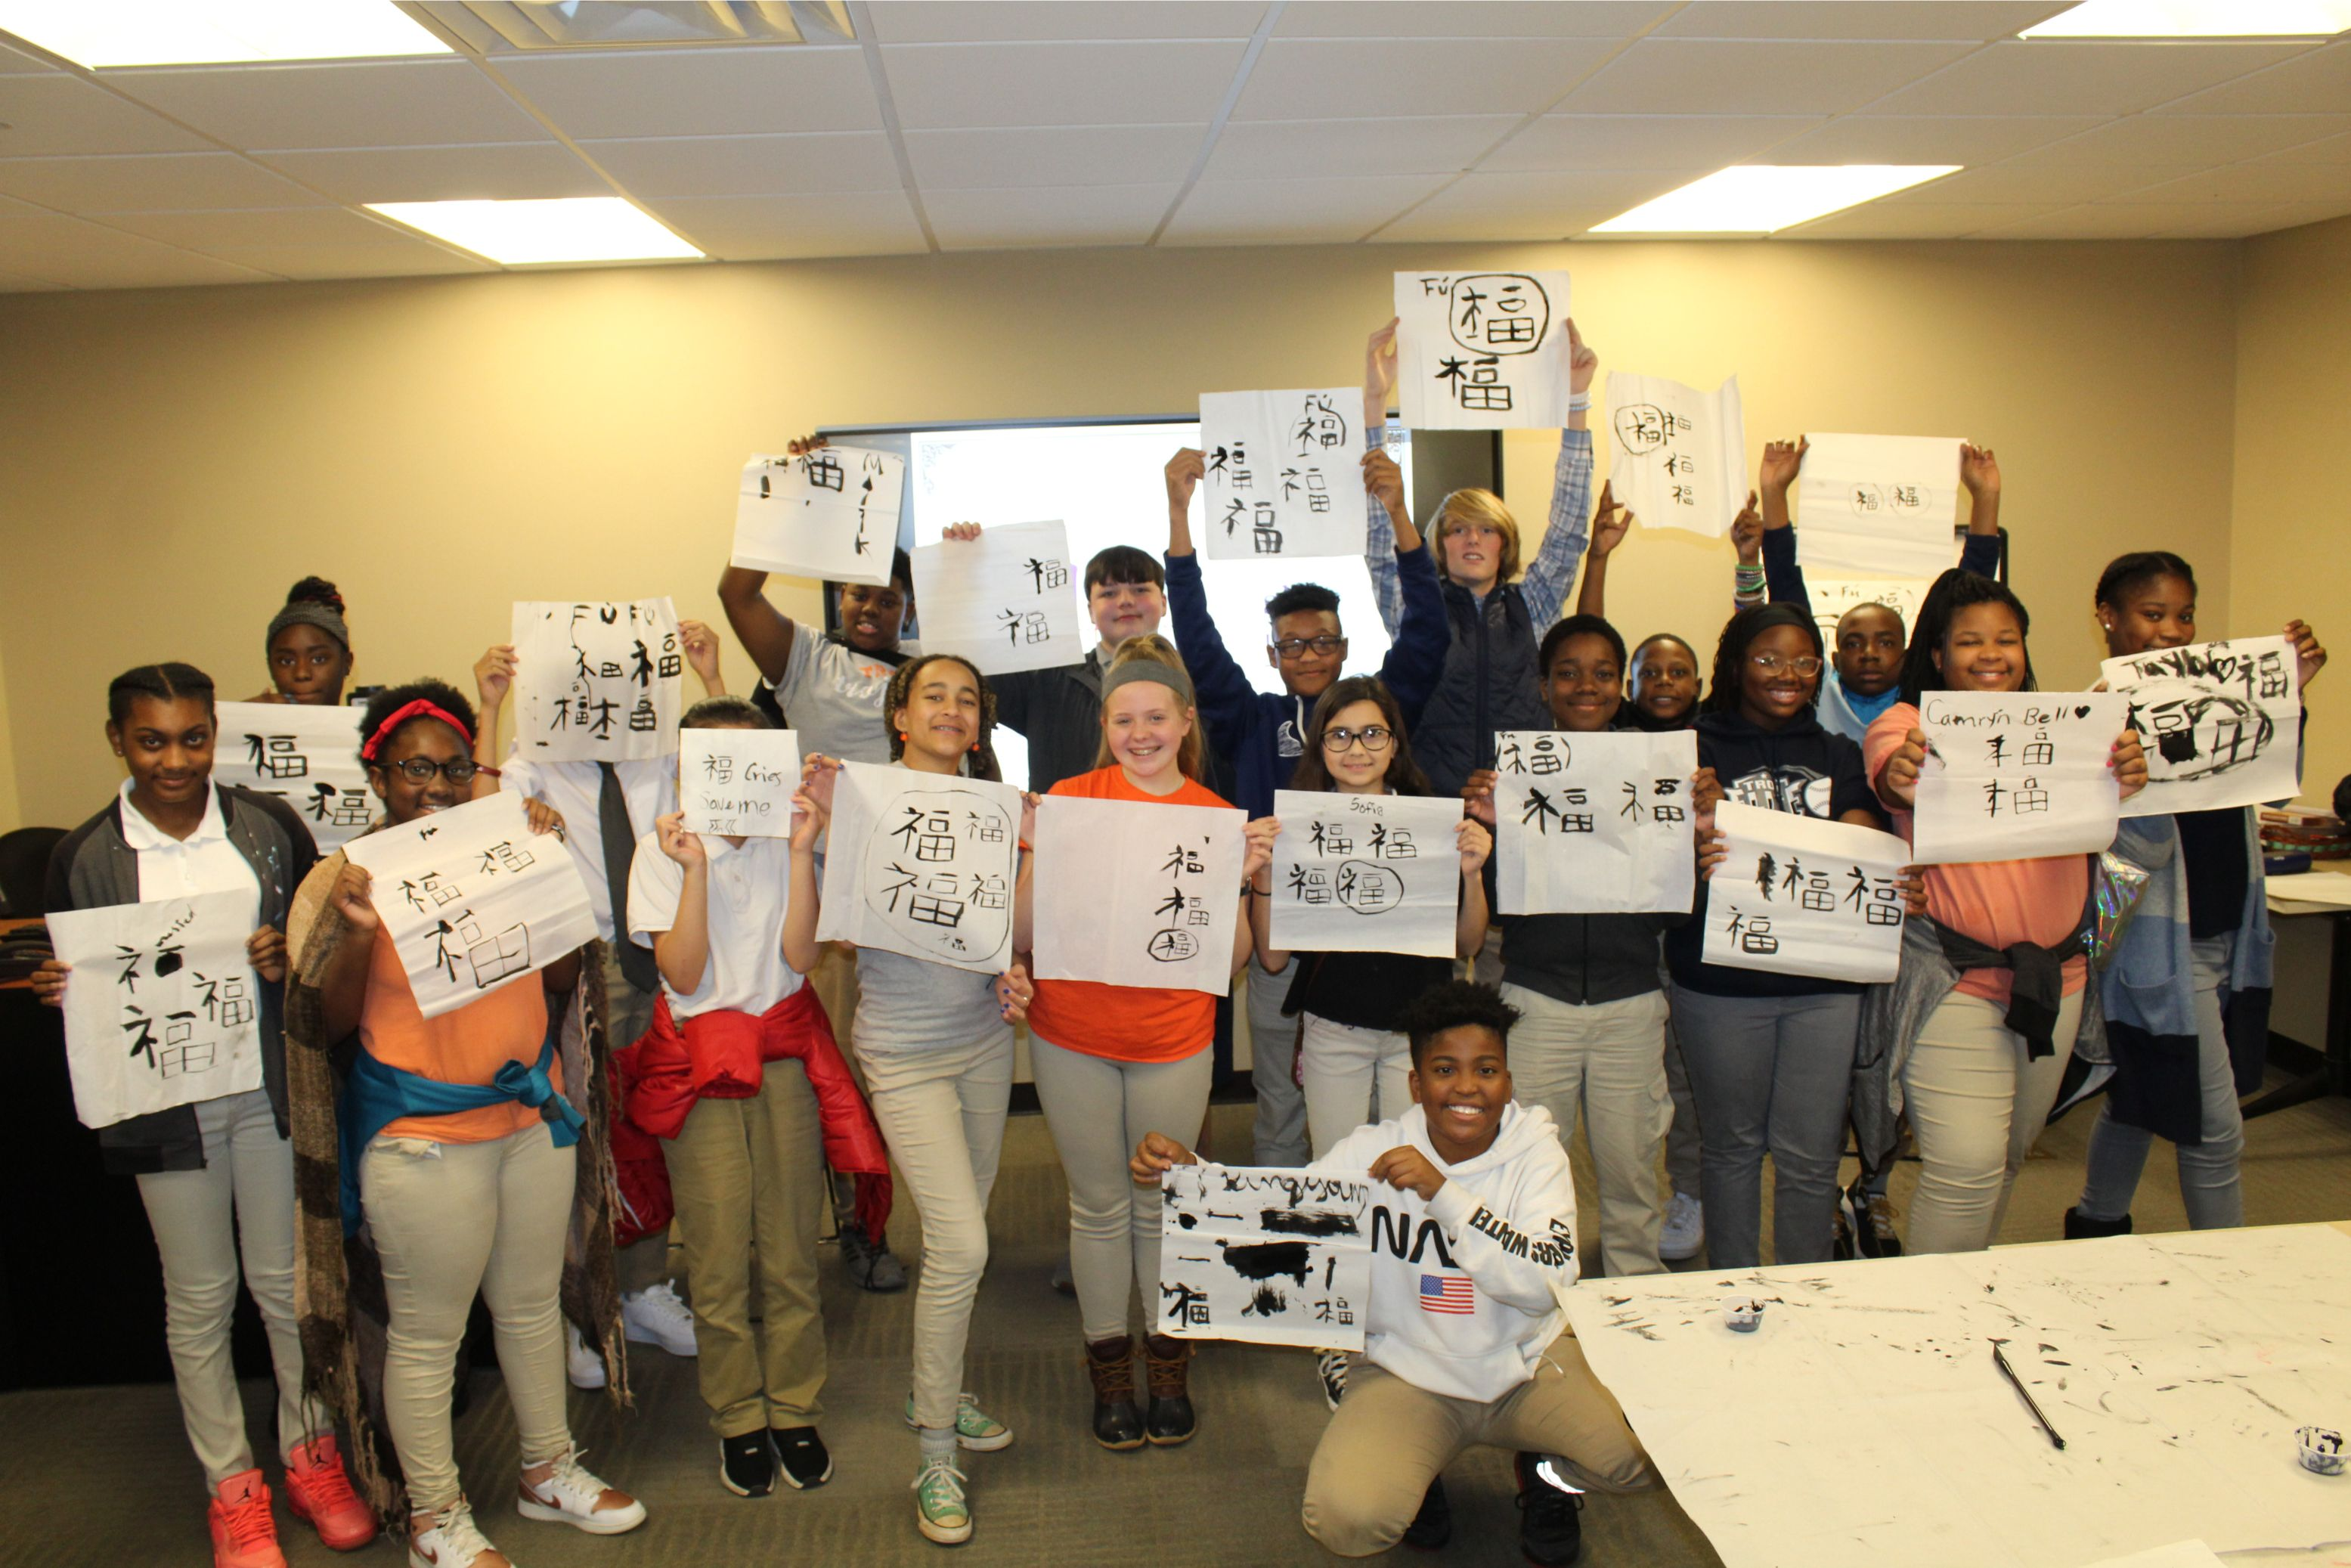 The students all pose with their calligraphy paintings.